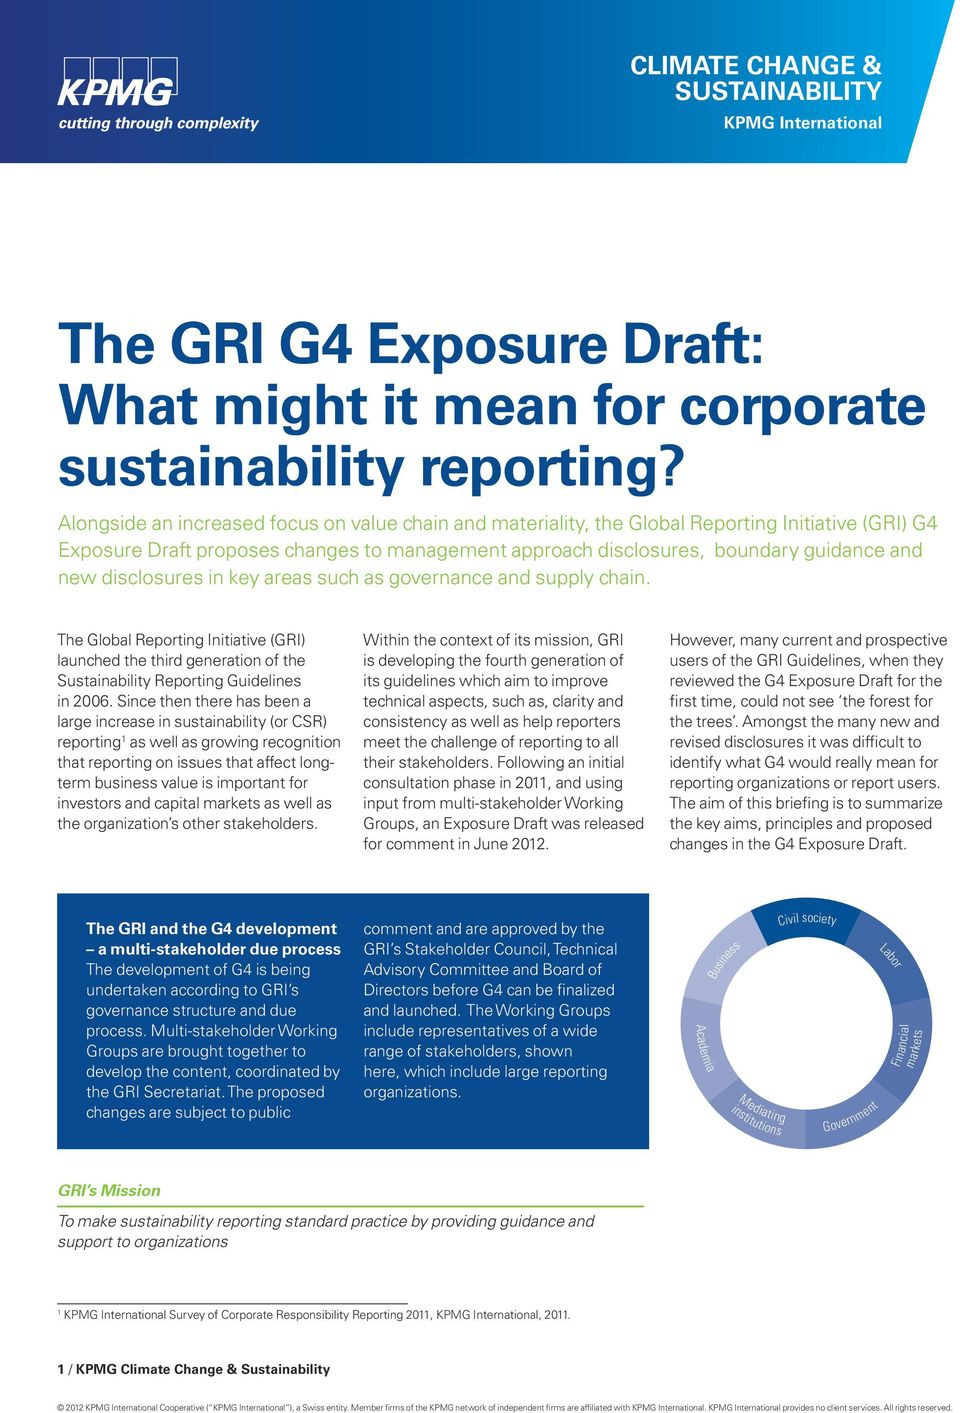 disclosures in key areas such as governance and supply chain. The Global Reporting Initiative (GRI) launched the third generation of the Sustainability Reporting Guidelines in 2006.